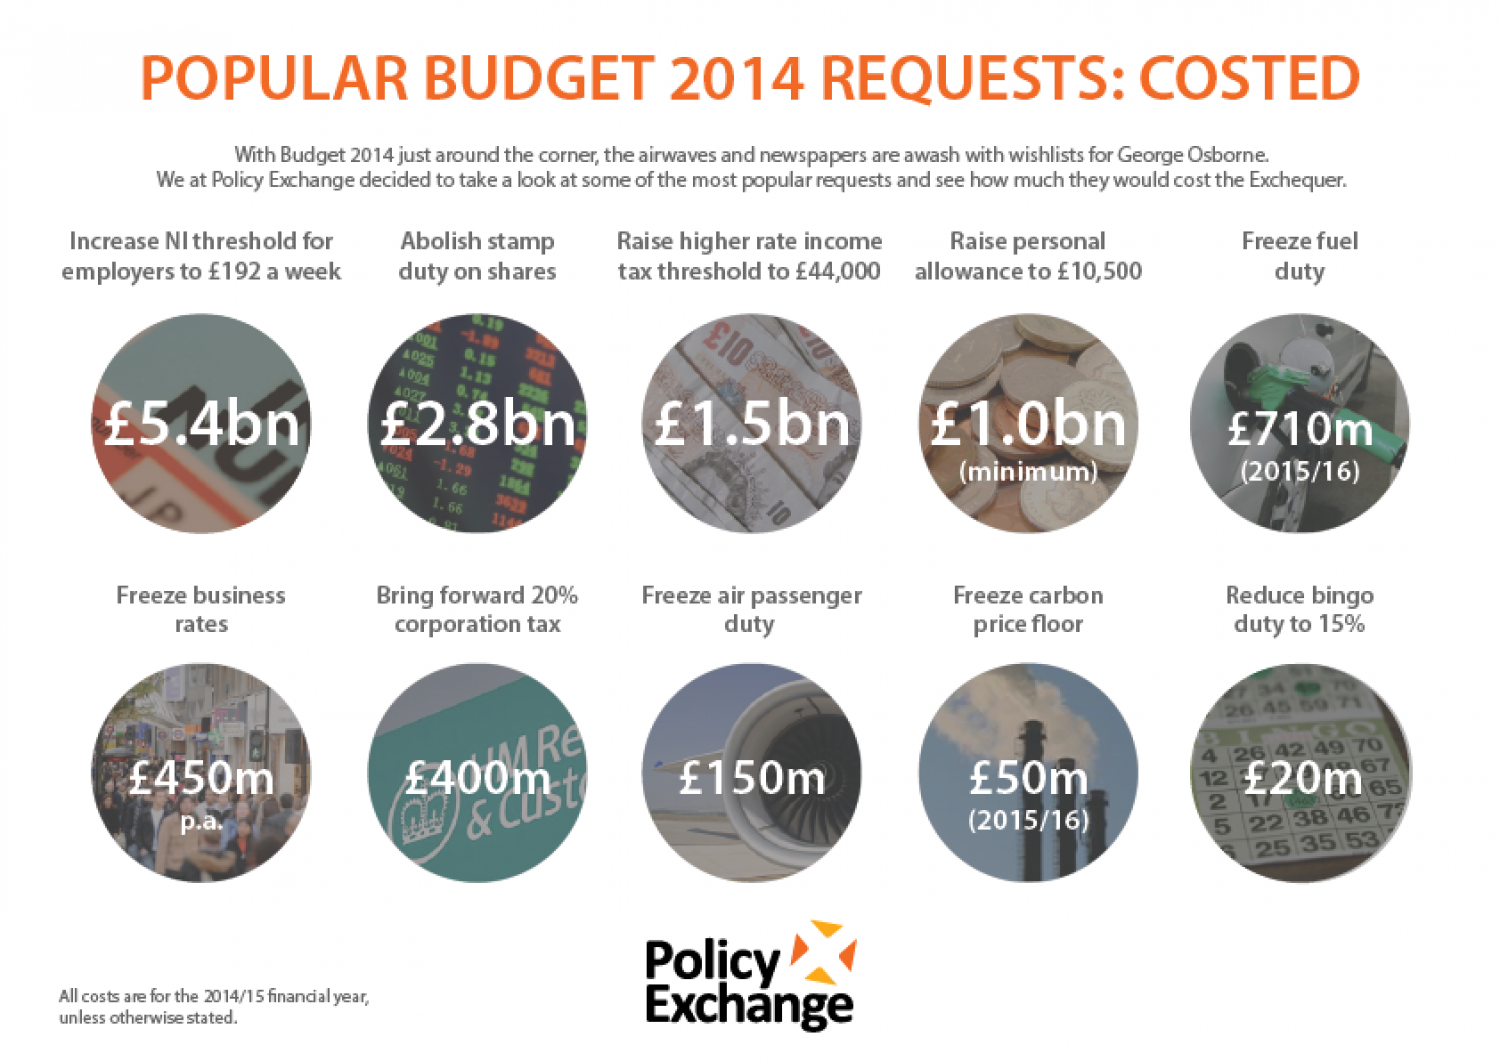 Popular Budget 2014 Requests: Costed Infographic